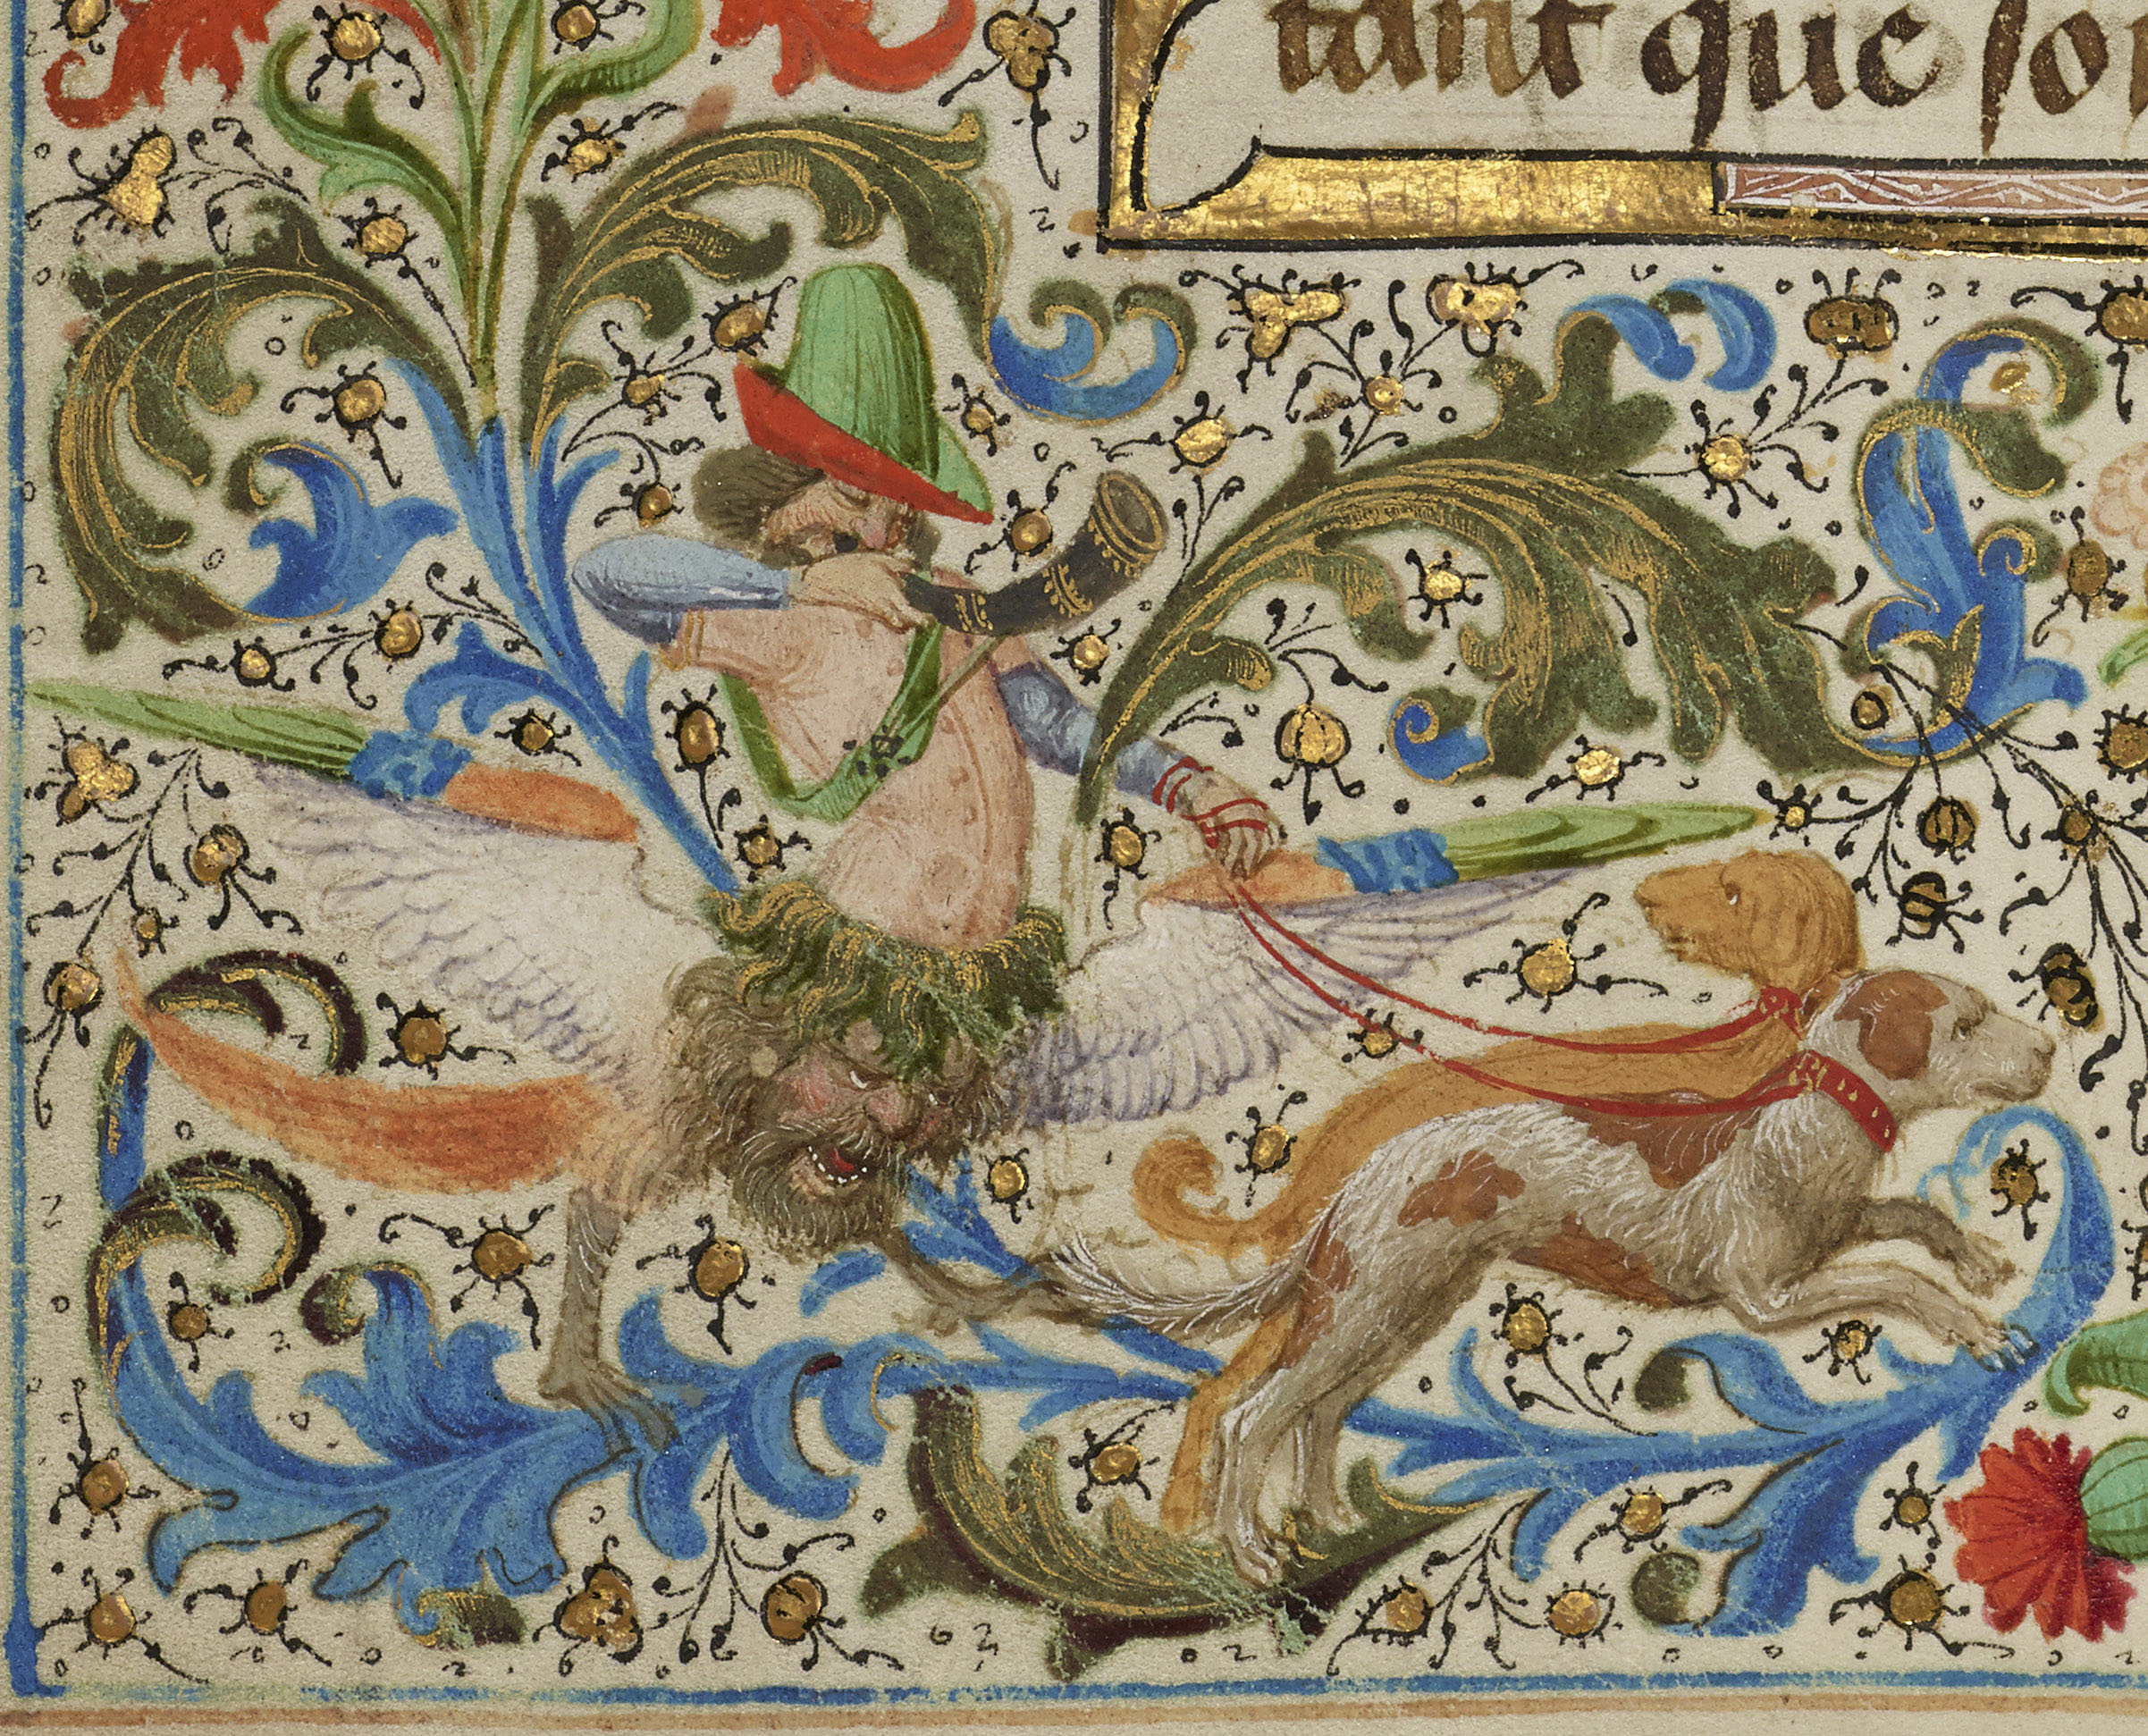 The J. Paul Getty Museum, Los Angeles, Ms. 111, fol. 134v.